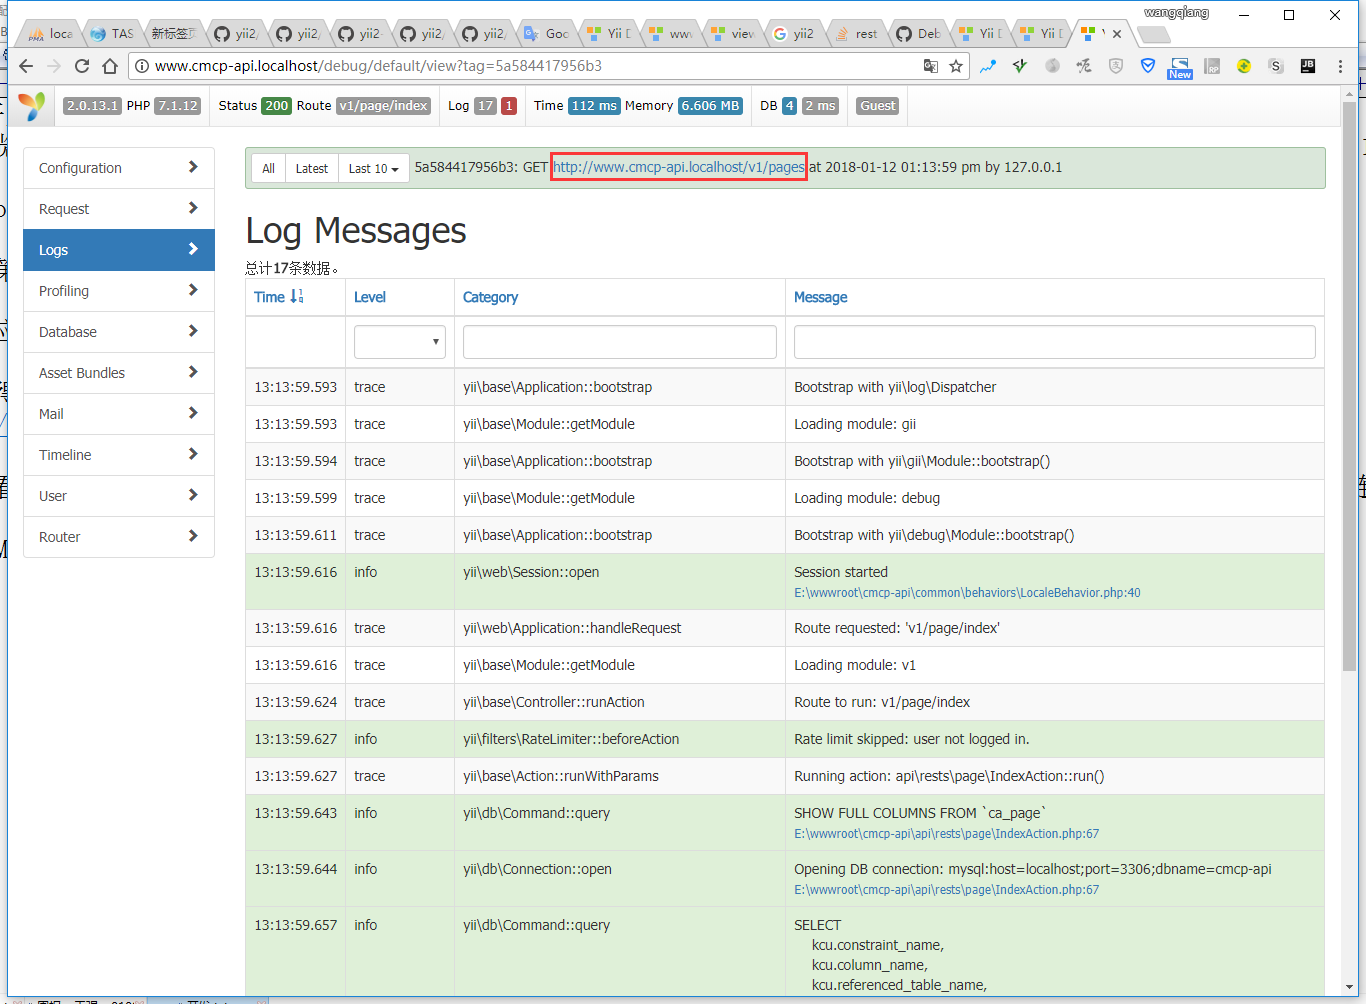 Log Messages 页面,便是 在 Postman 中,GET http://www.cmcp-api.localhost/v1/pages 的调试数据